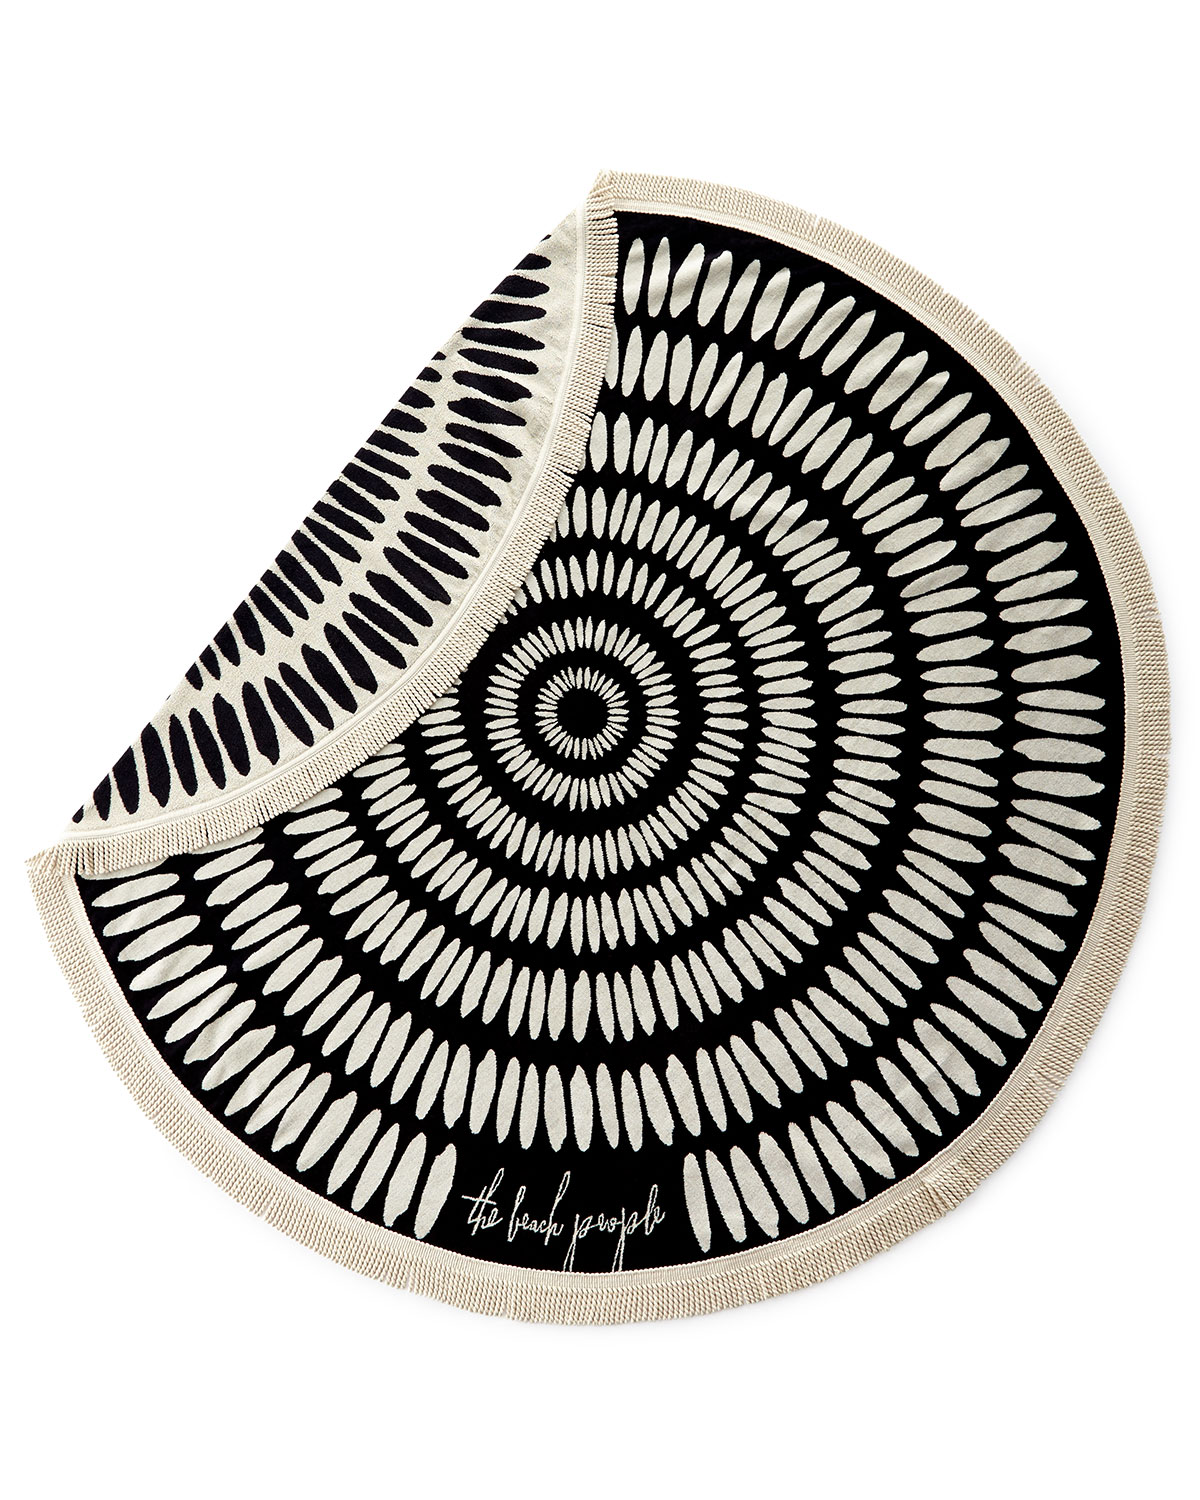 Tulum Round Beach Towel, Black/Creme - The Beach People